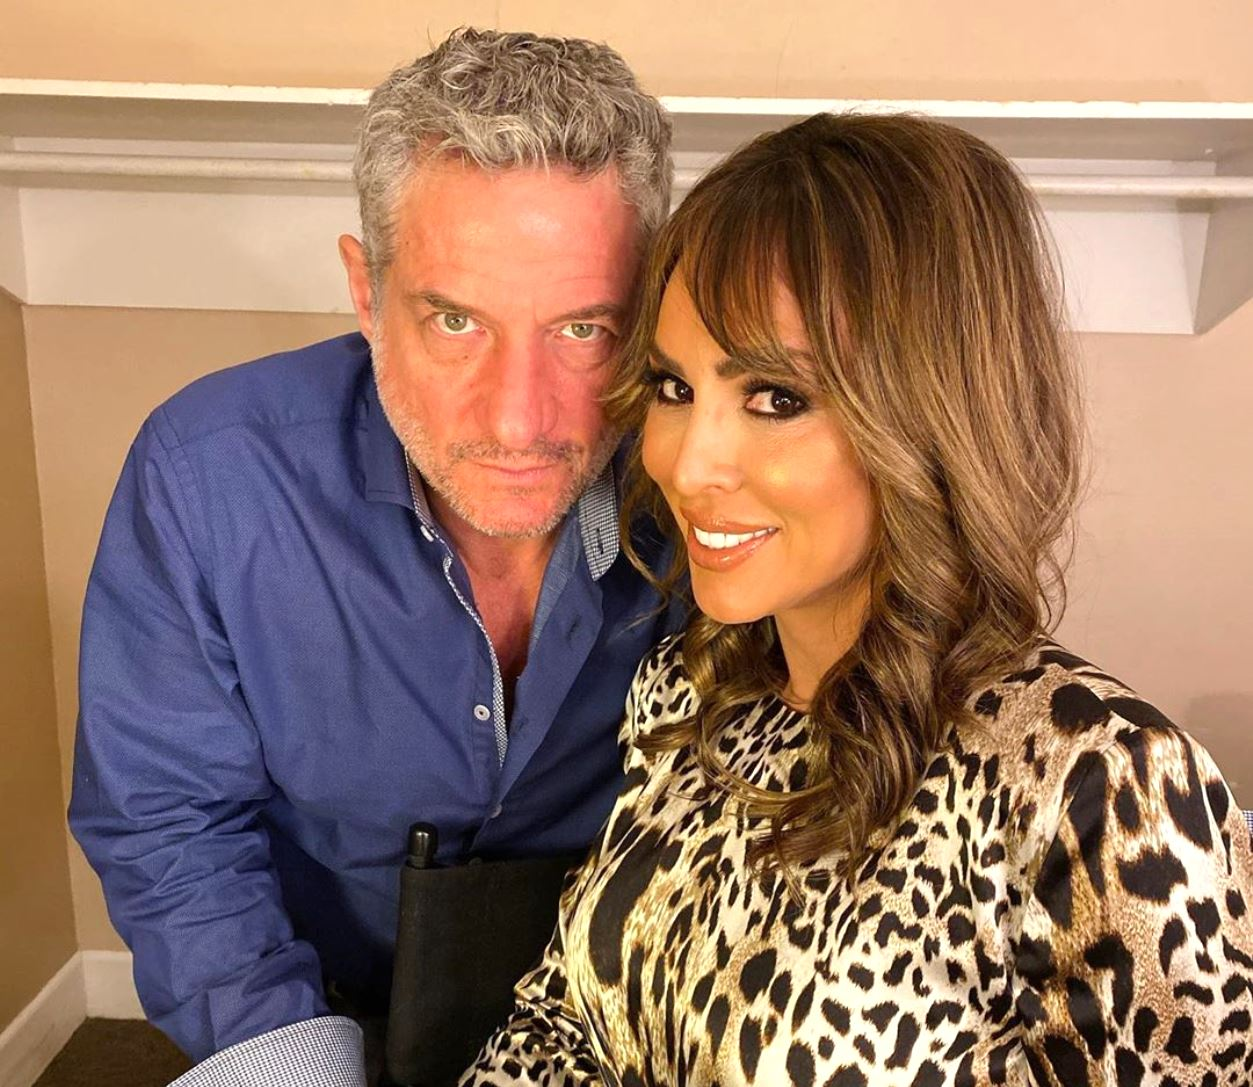 """RHOC Star Kelly Dodd and Fiancé Rick Leventhal Obtain Marriage License, Plus More Details on Their Upcoming """"Intimate"""" October Wedding"""